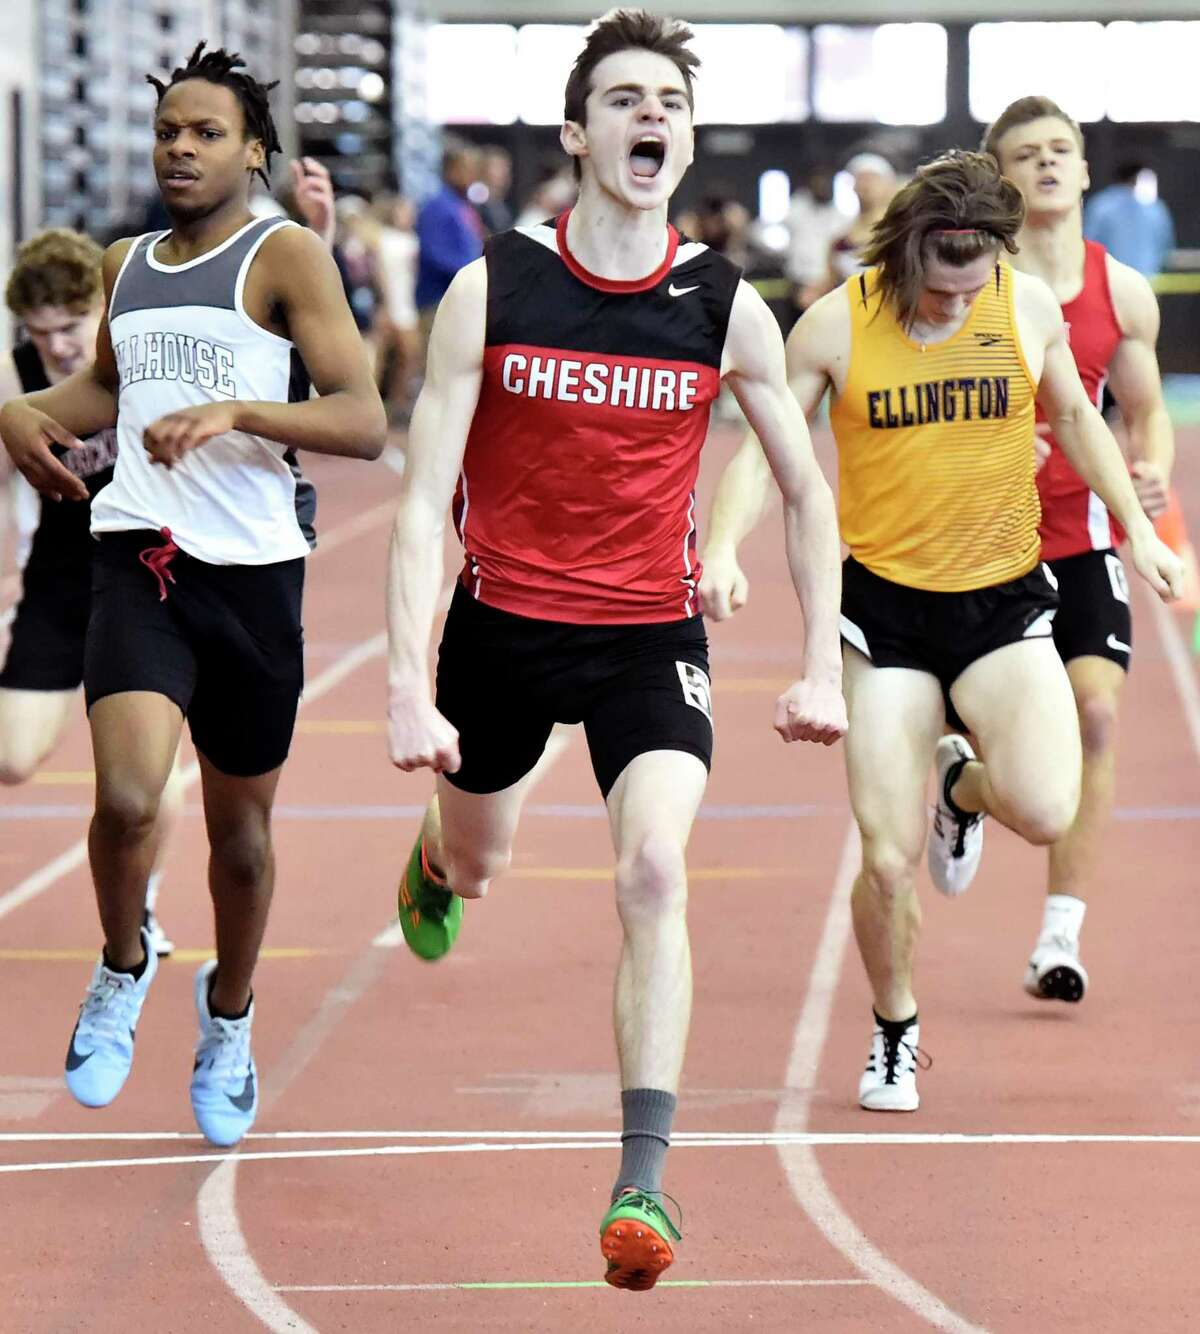 Cheshire's Ryan Farrell wins the the 600-meter run at the State Open in 2020.